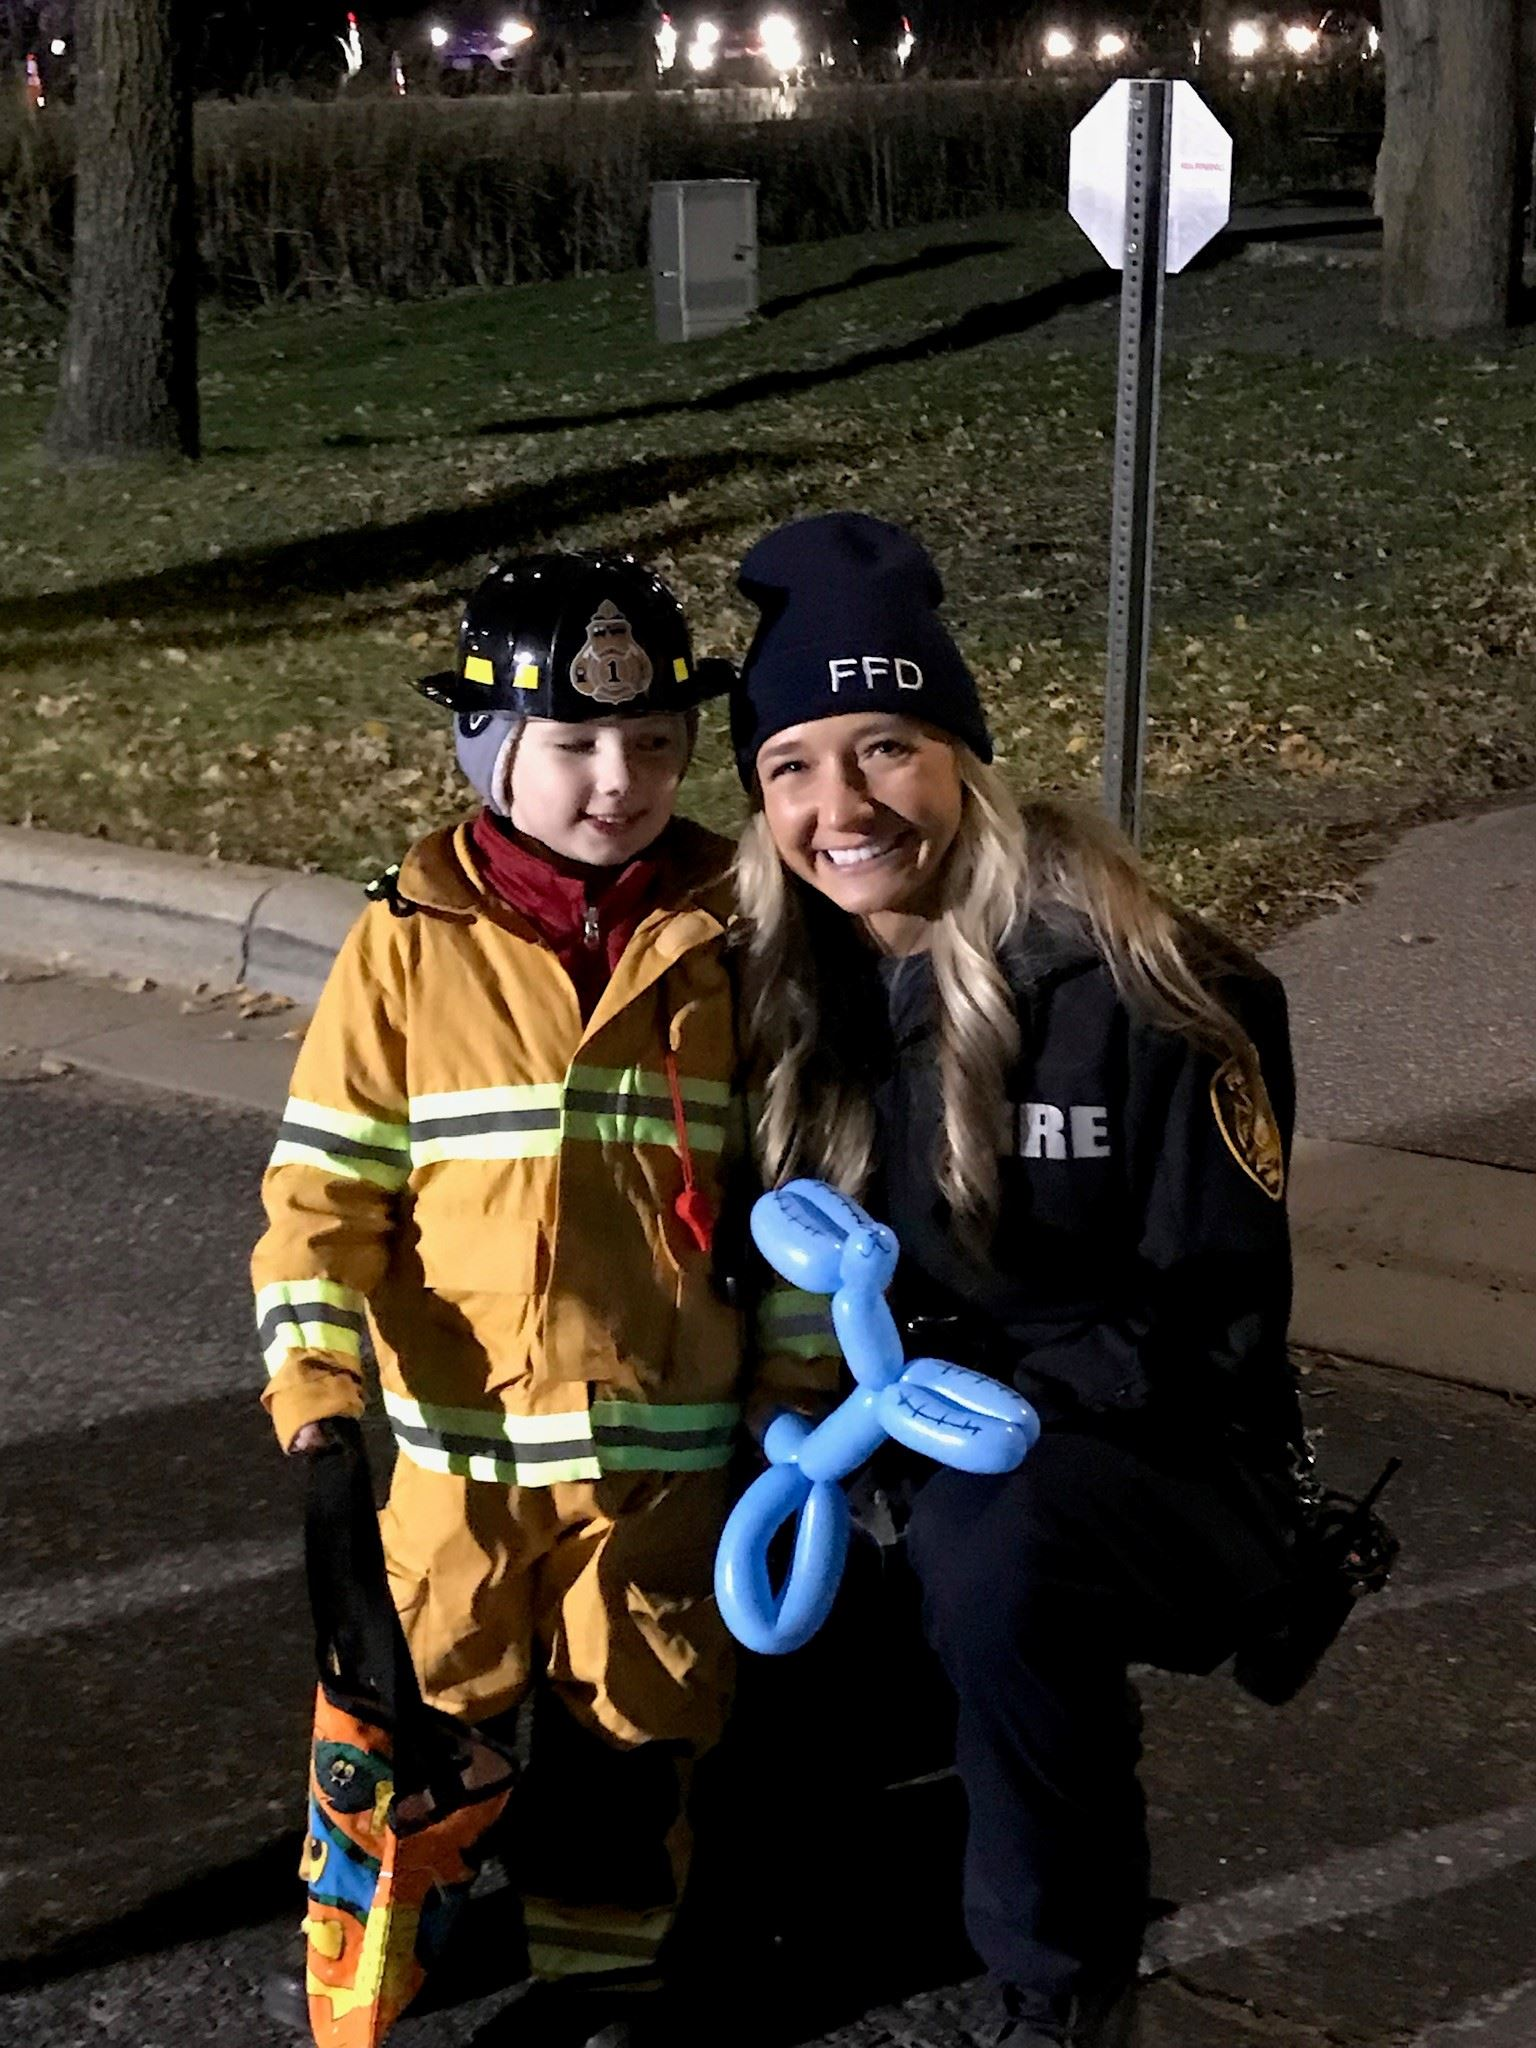 Female firefighter with child